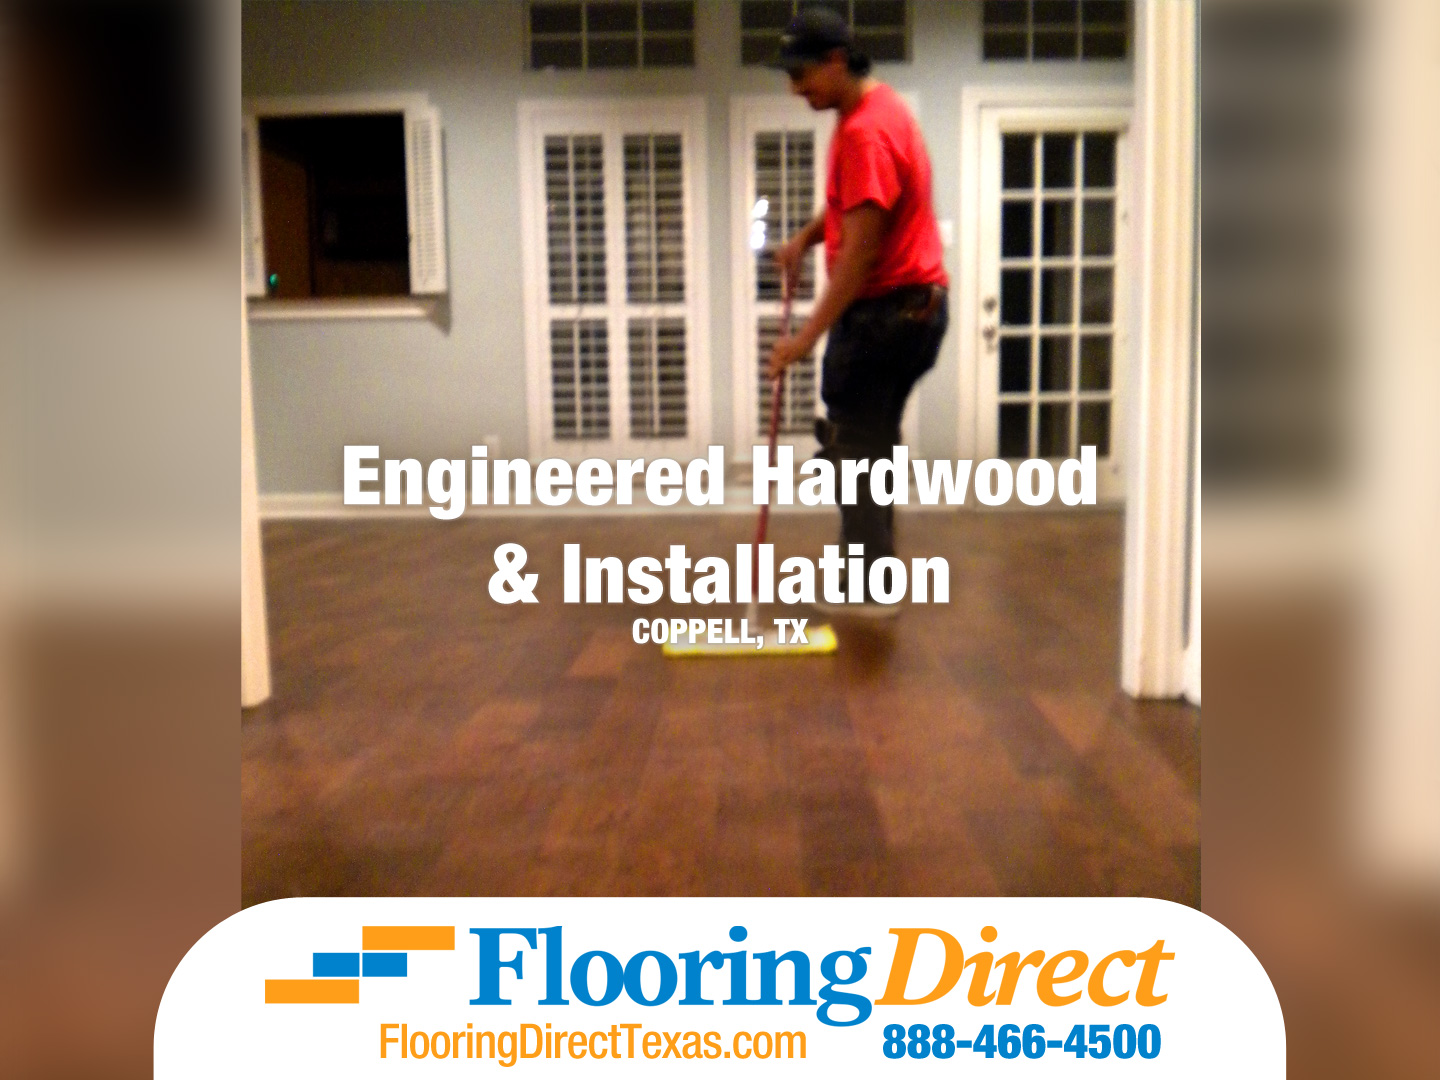 Engineered Hardwood And Installation Coppell TX Flooring Direct 888-466-4500 WS6